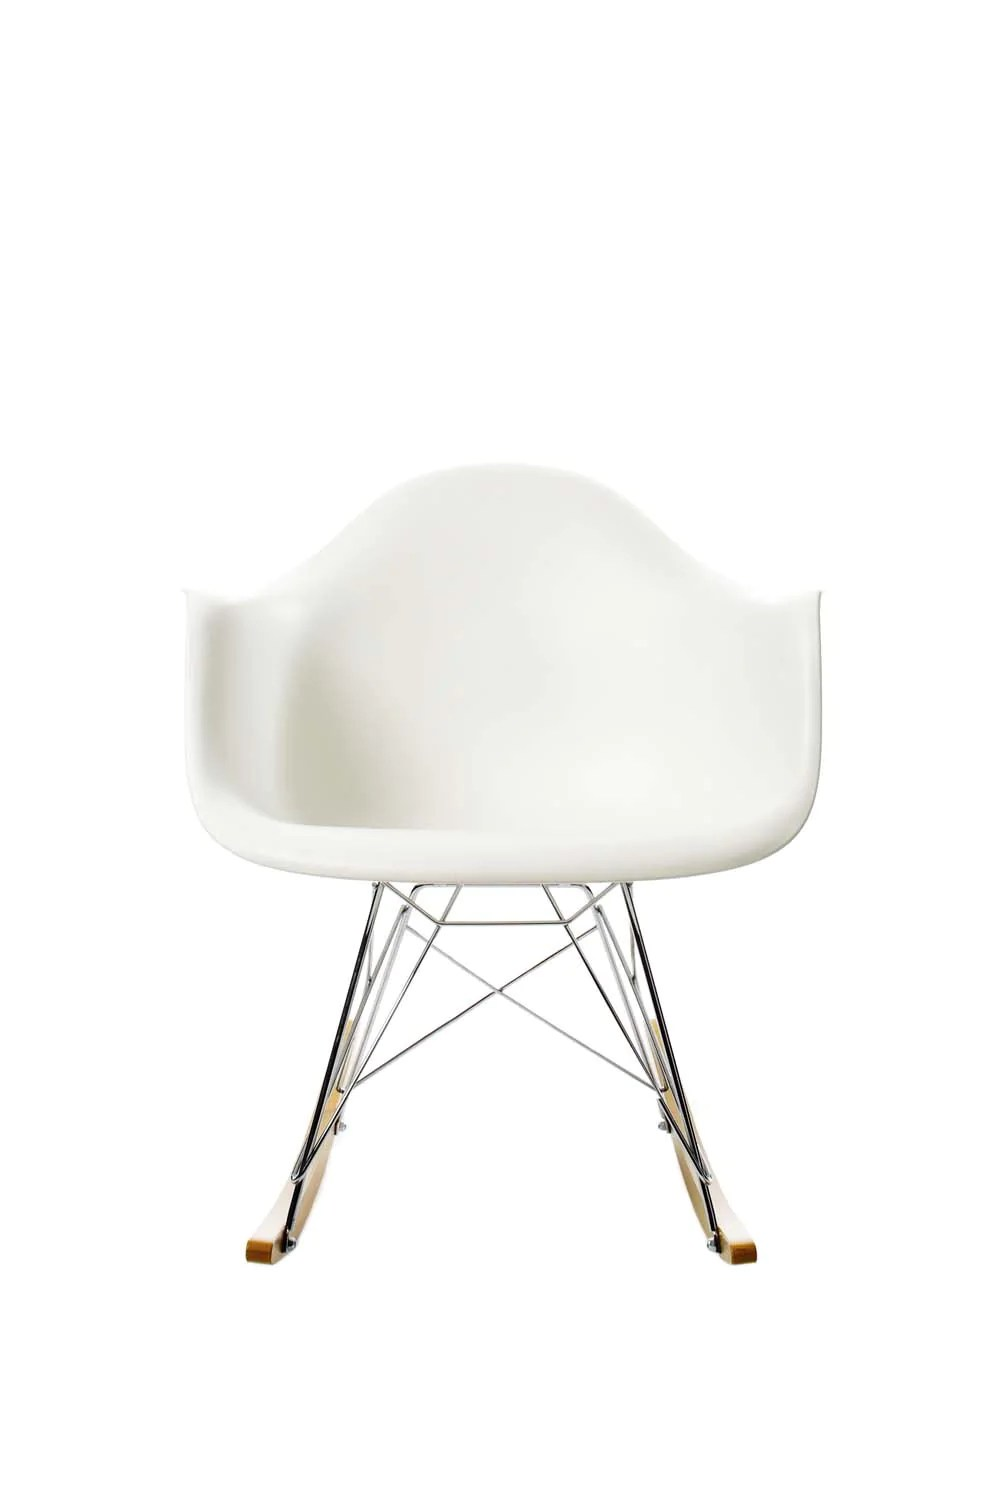 Eames Rar Eames Rar Chair